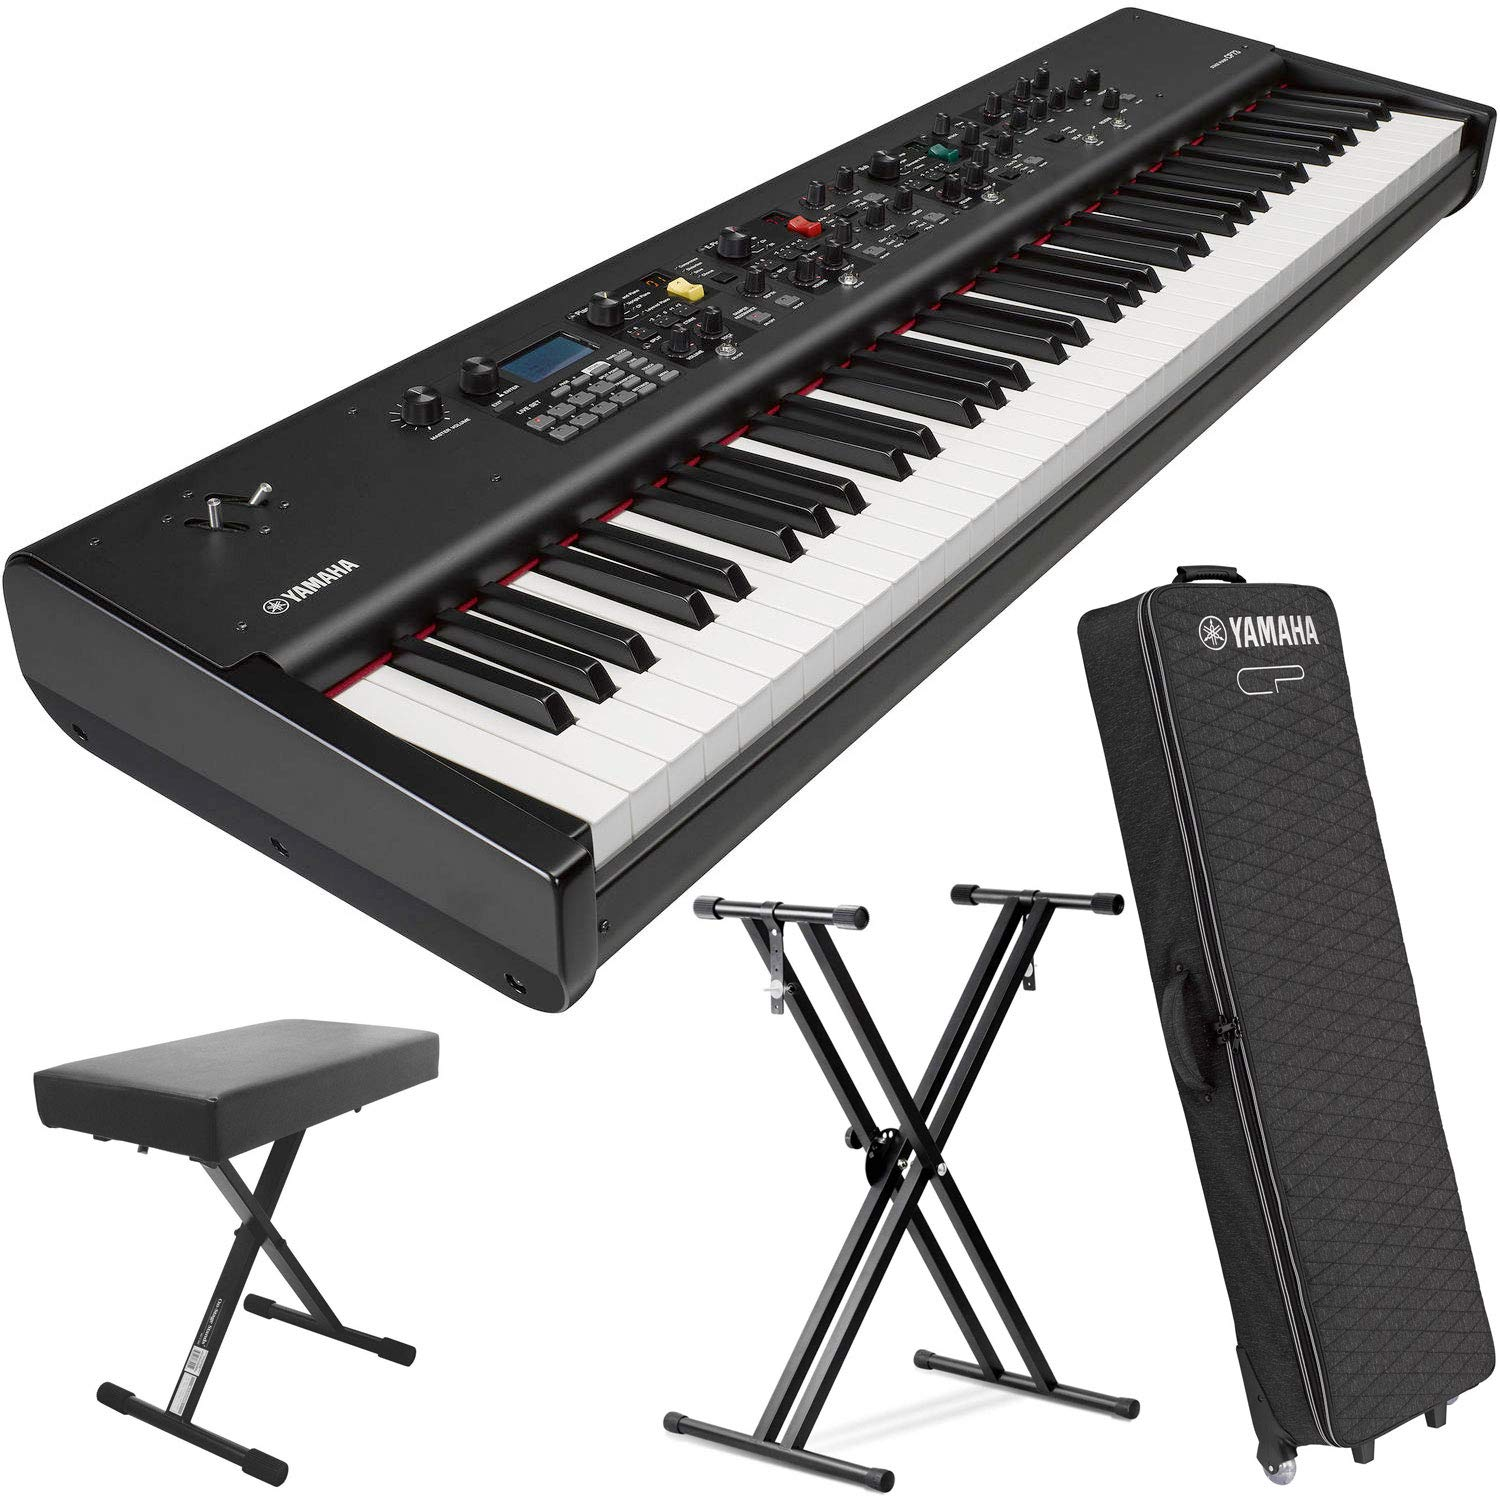 Yamaha CP73 73-Key Weighted Hammer Action Stage Piano (w/Sustain Pedal, Keyboard Stand & Soft Piano Case) by YamahaBundle